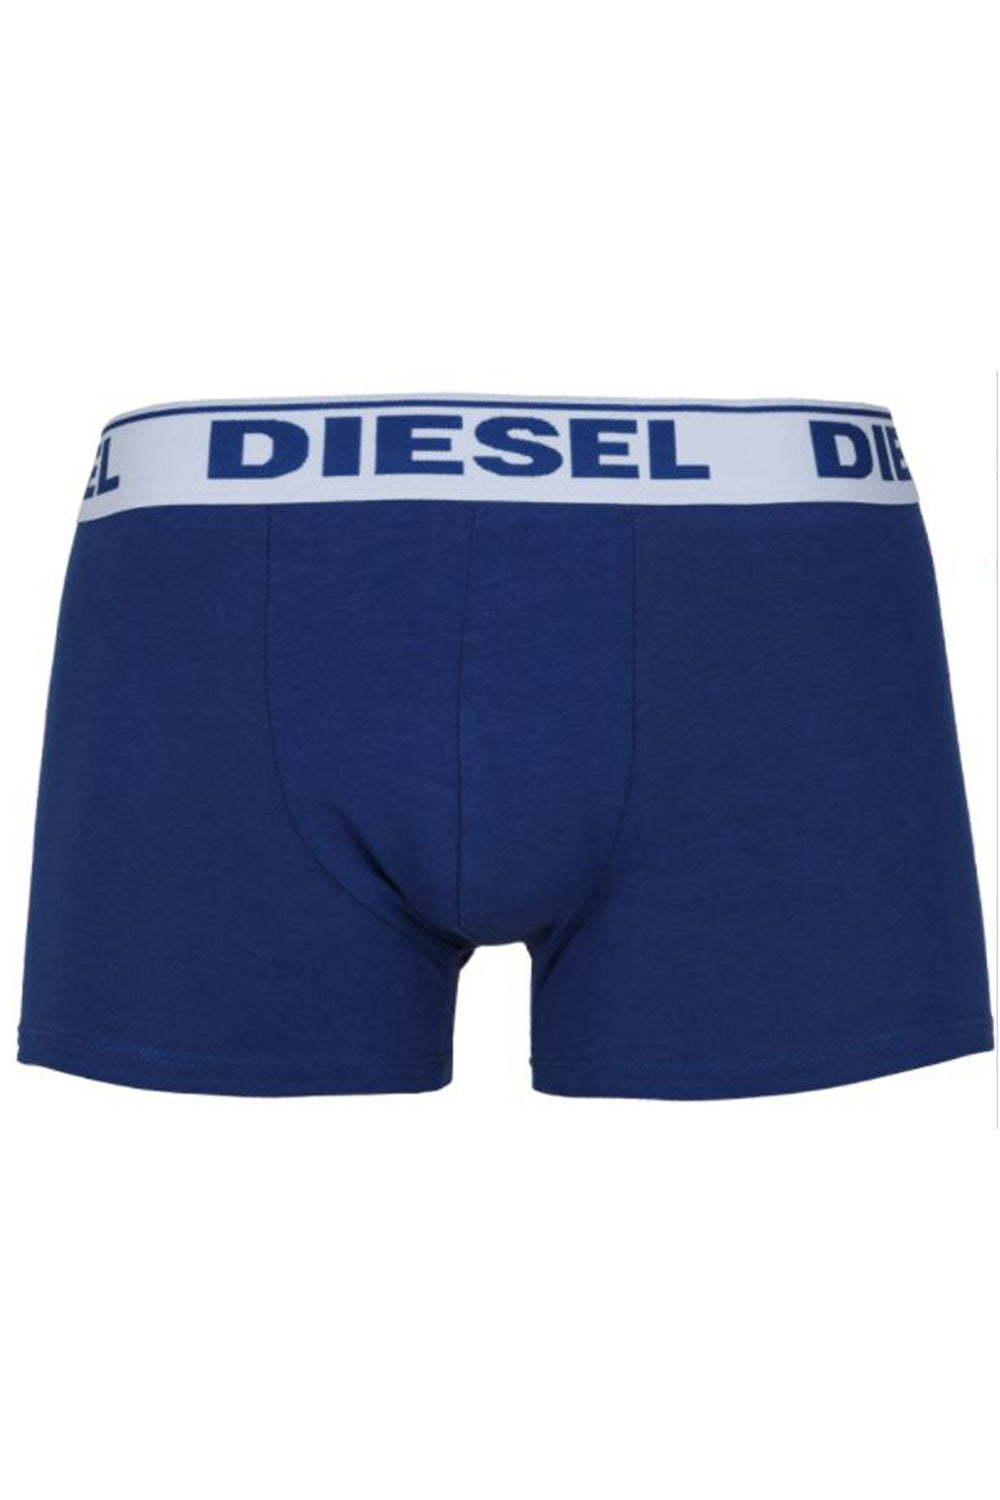 3 Pack Mens Diesel Boxer Shorts